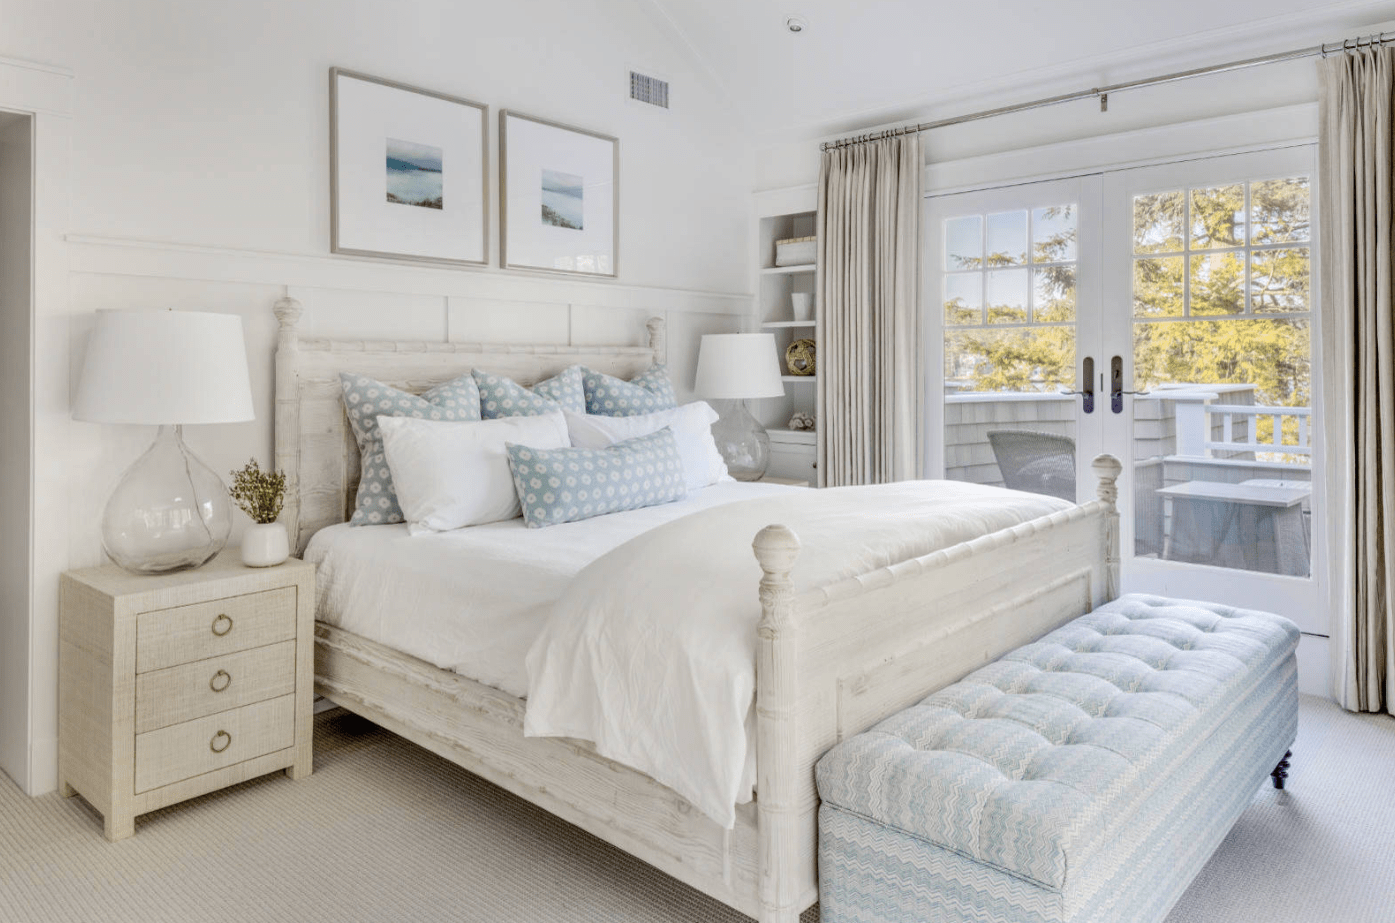 Charming primary bedroom with wooden bed and a lovely blue tufted bench on its end. It includes wooden nightstands with round glass table lamps and carpet flooring.